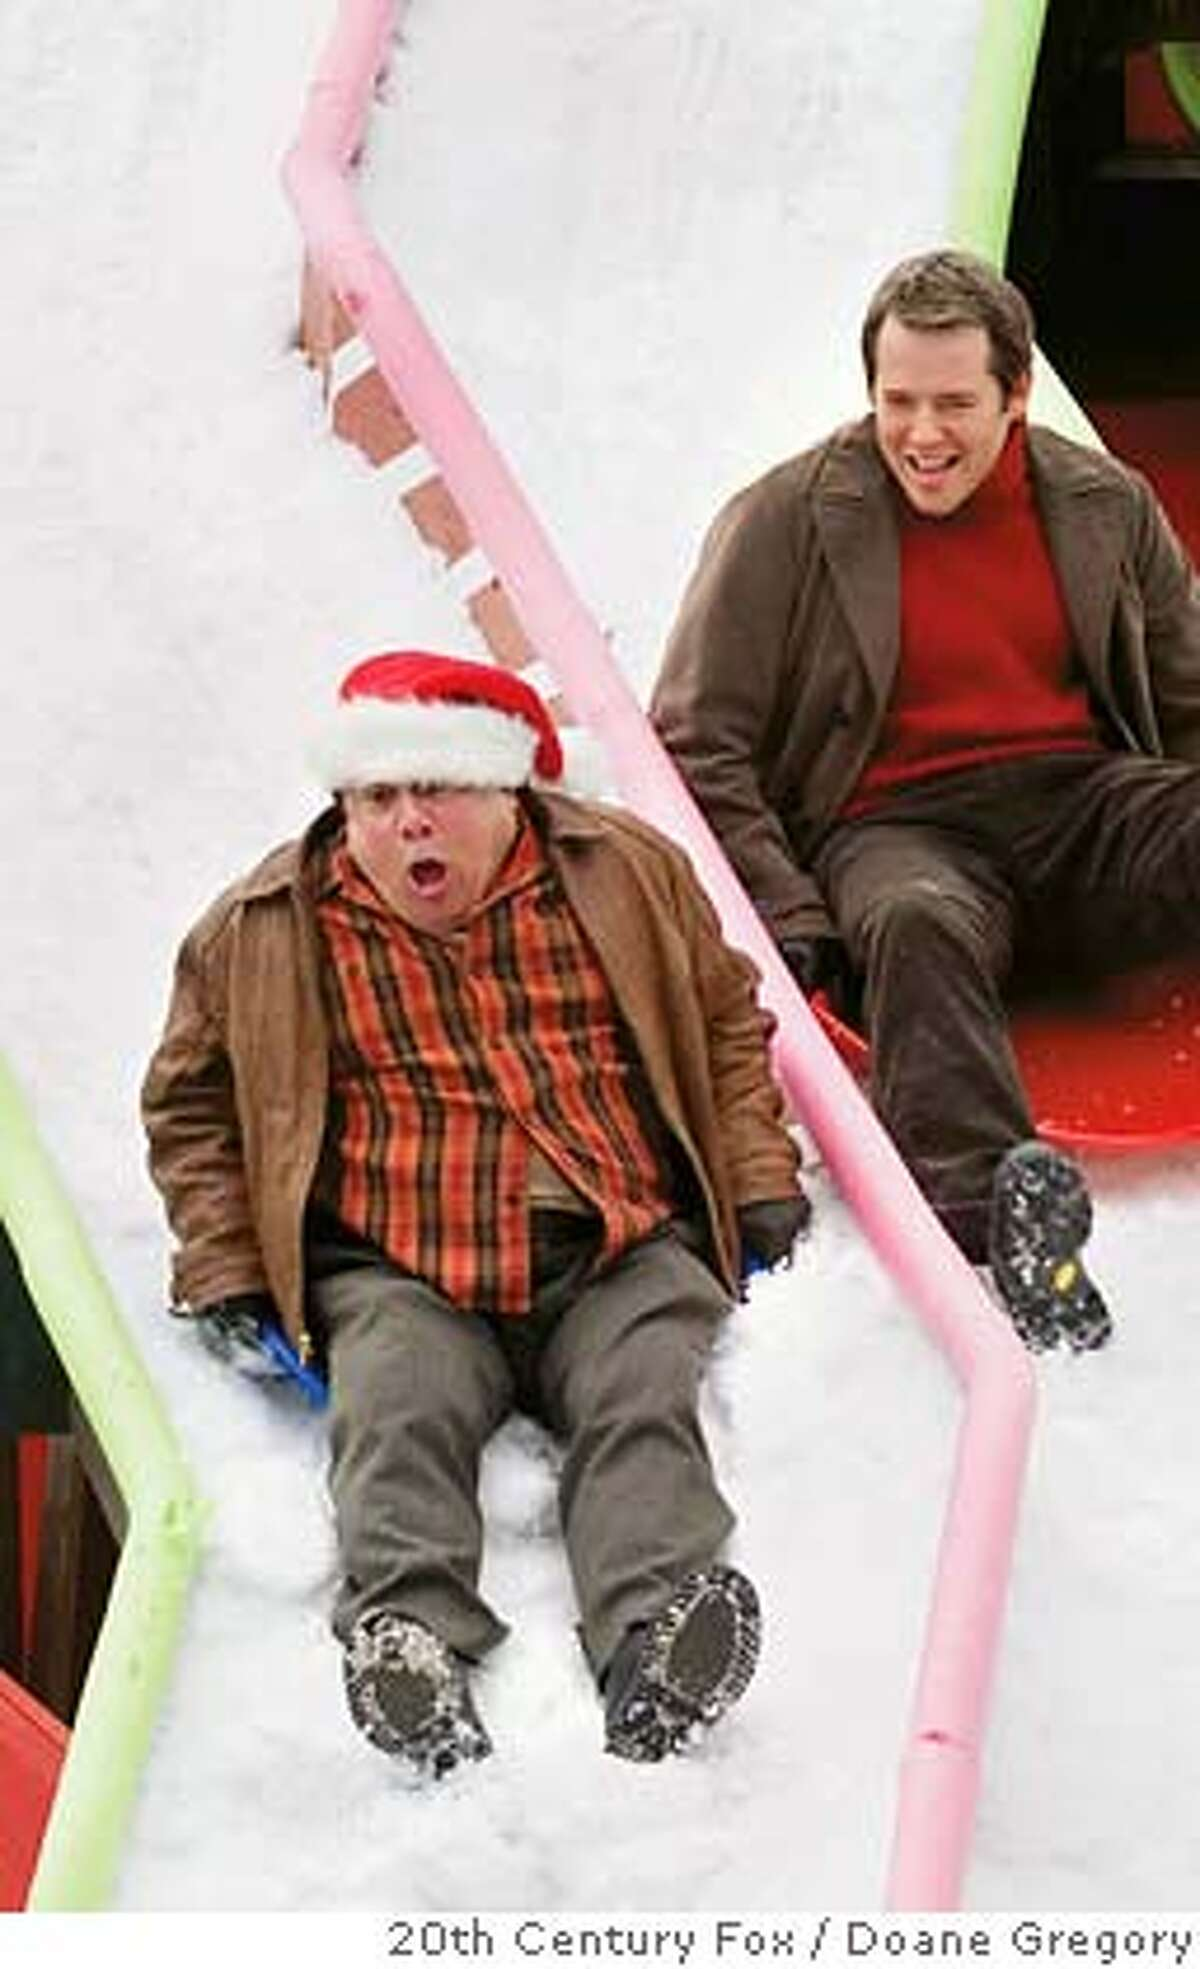 It�s tough sledding for feuding neighbors Buddy Hall (Danny DeVito, left) and Steve Finch (Matthew Broderick).